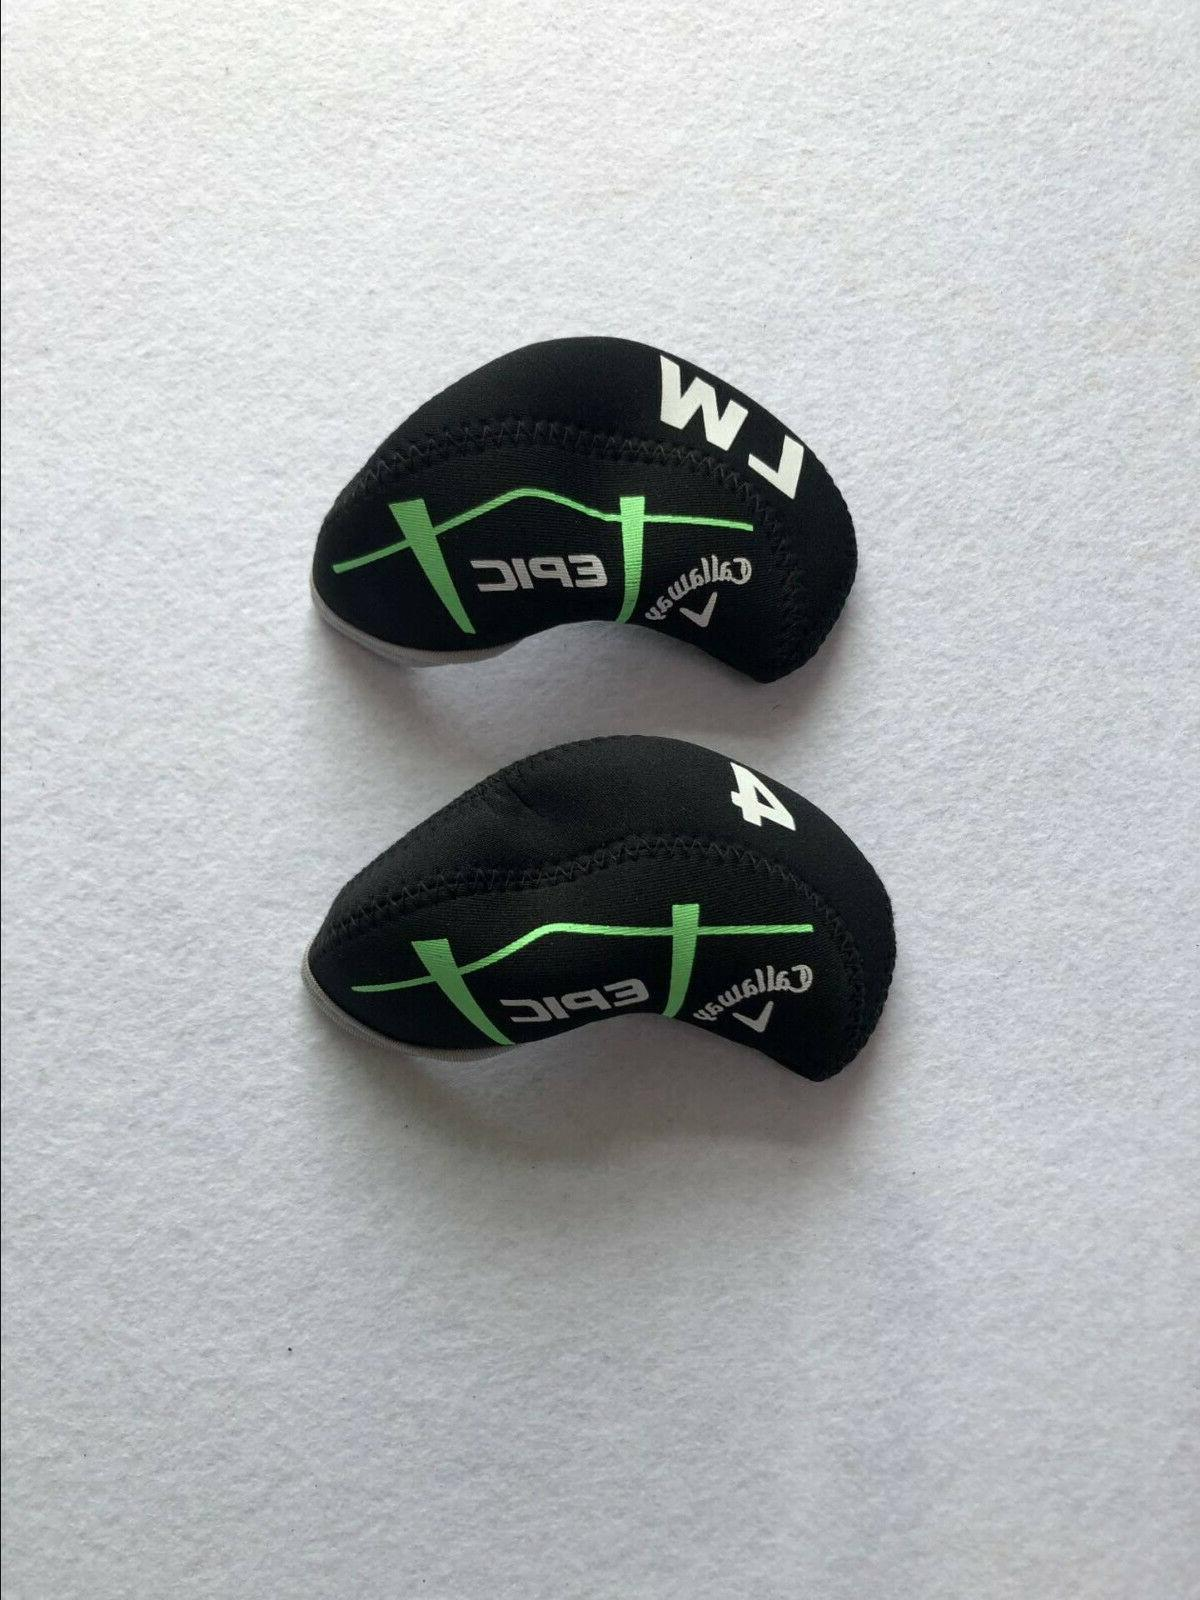 10PCS Headcovers for Callaway EPIC Covers Black&Black 4-LW